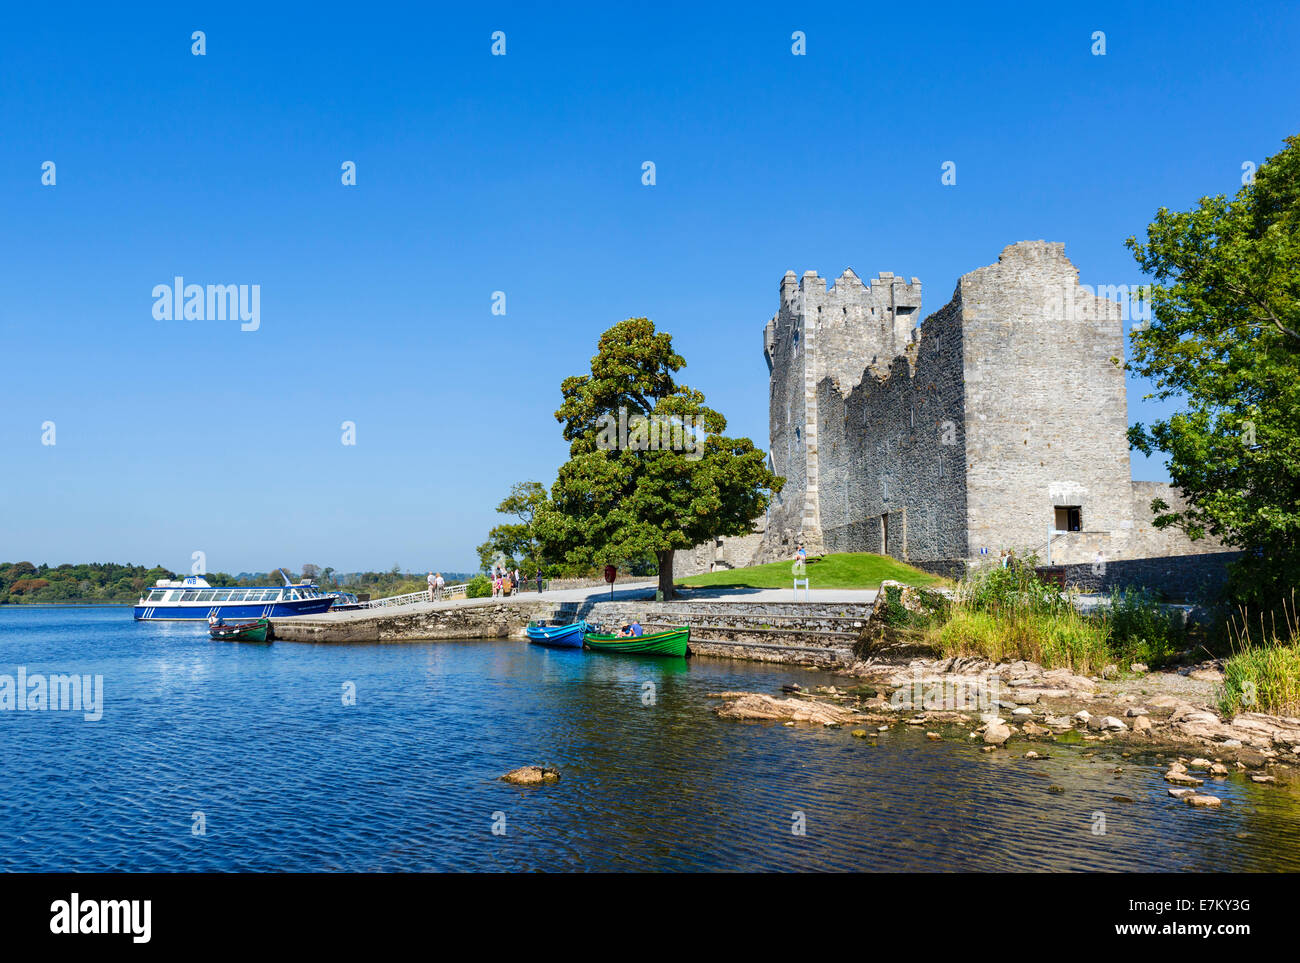 15thC Ross Castle on the shores of Lough Leane, Killarney National Park, County Kerry, Republic of Ireland - Stock Image